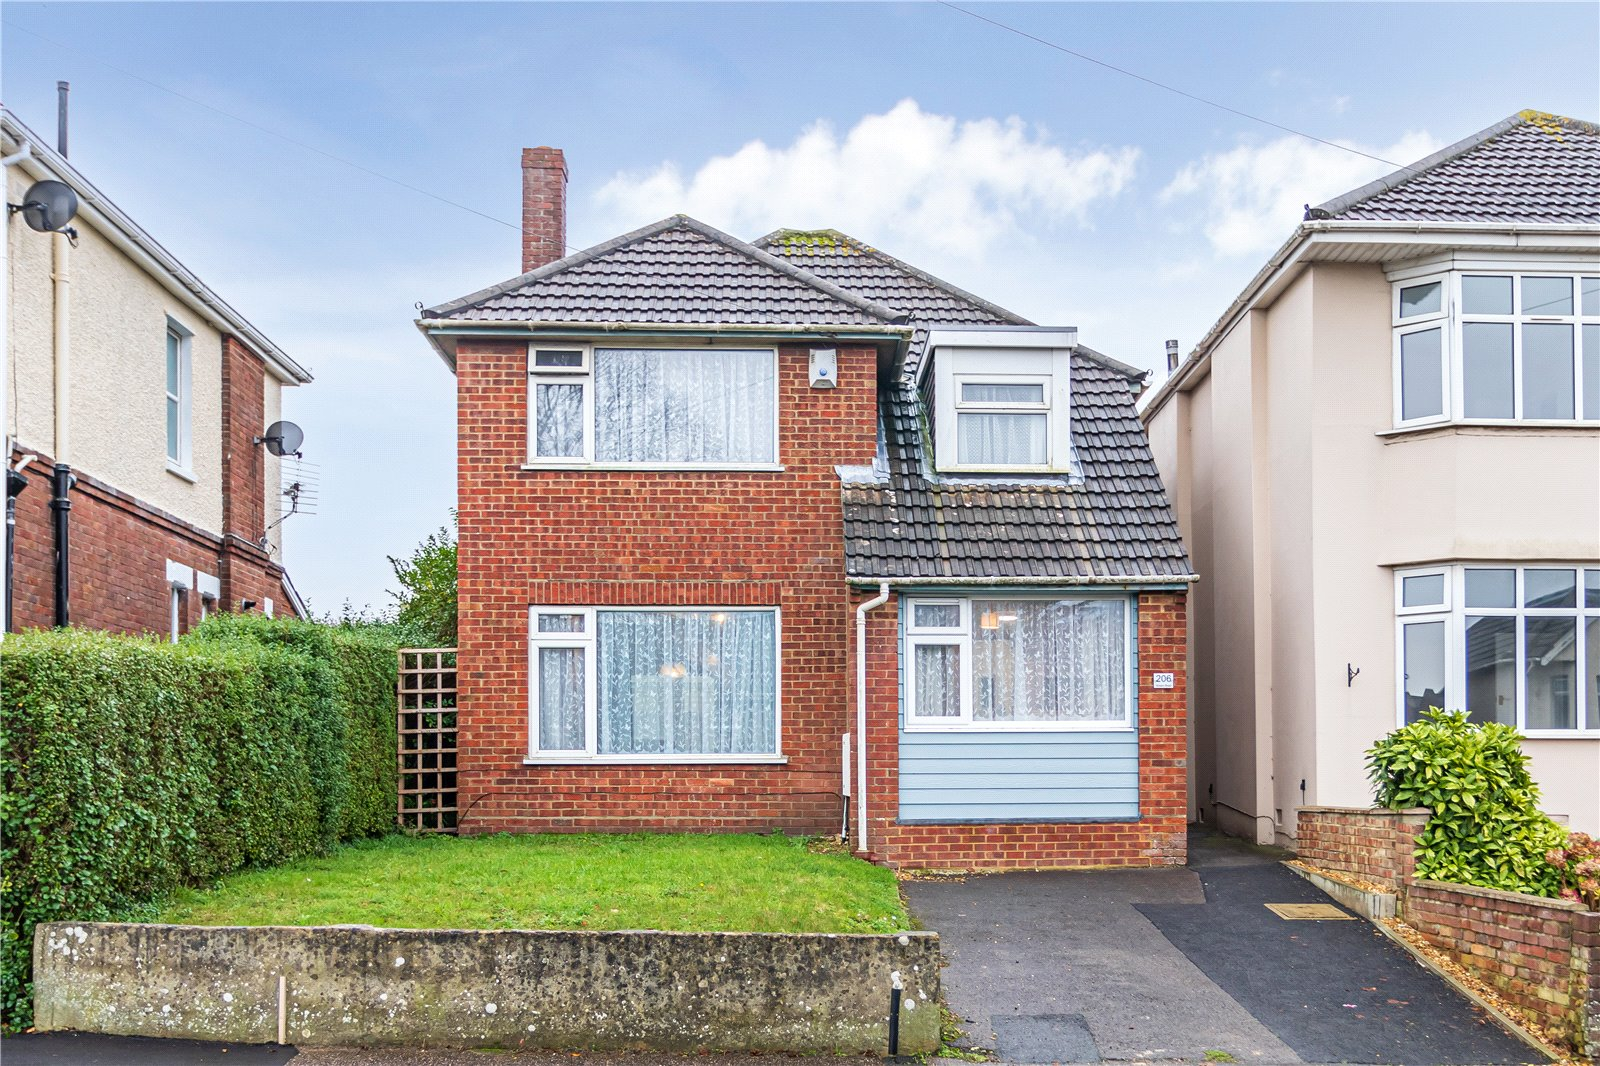 4 bed house for sale in Kinson Road, Bournemouth  - Property Image 1